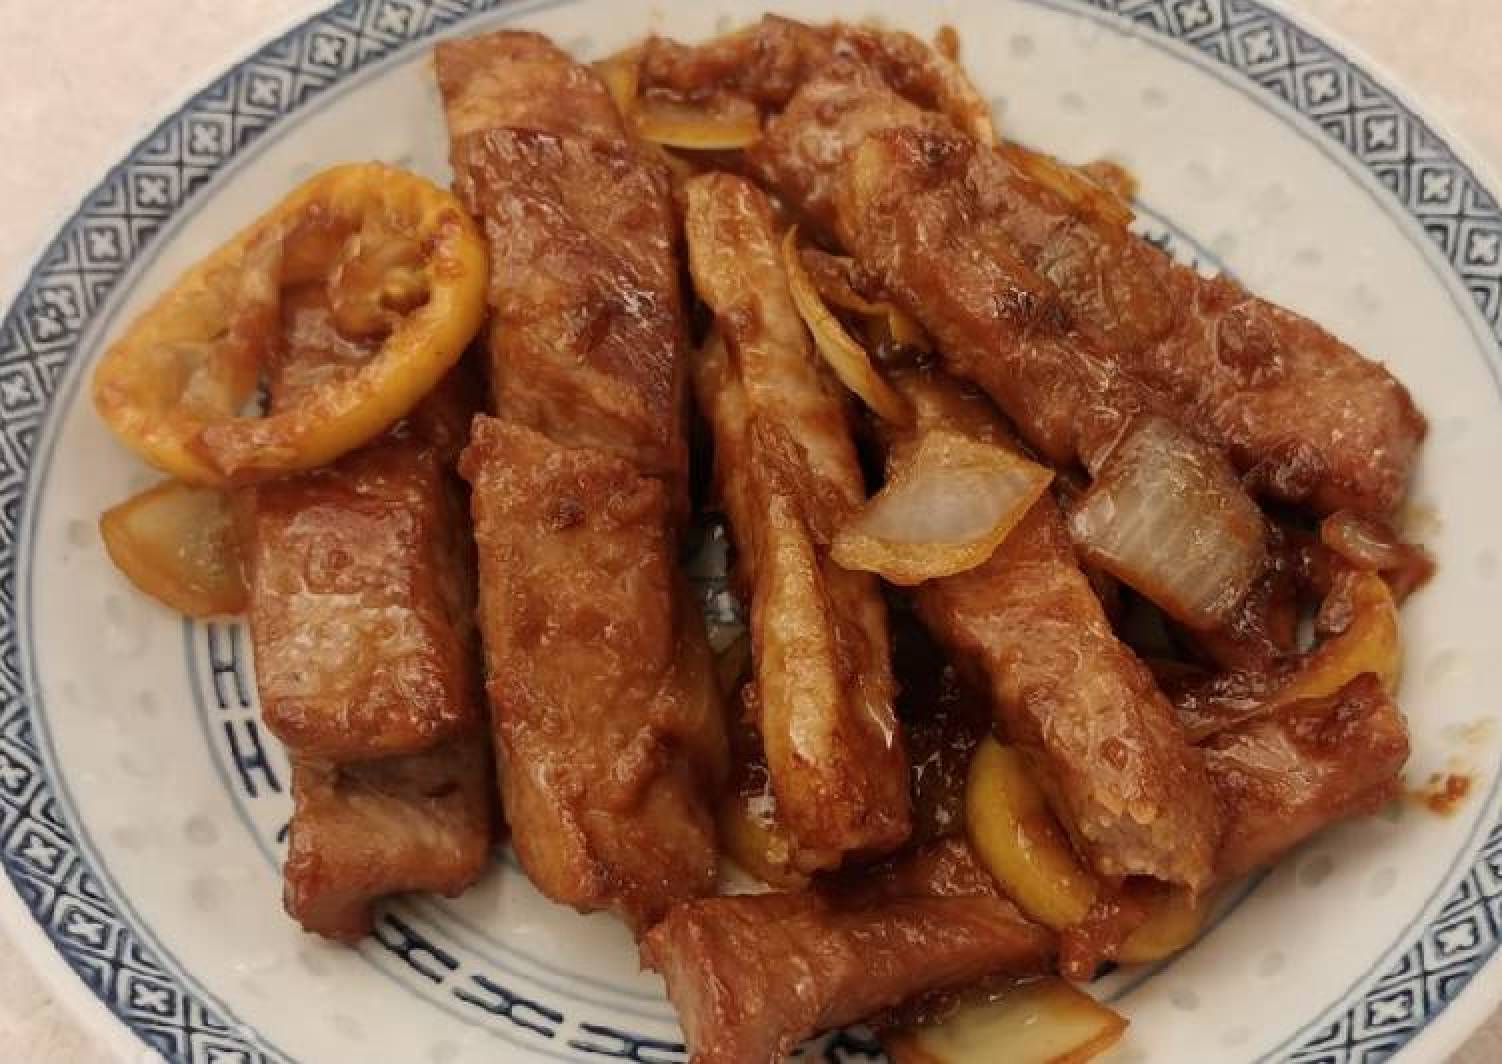 薑檸豬肉 (Ginger Lemon Pork)